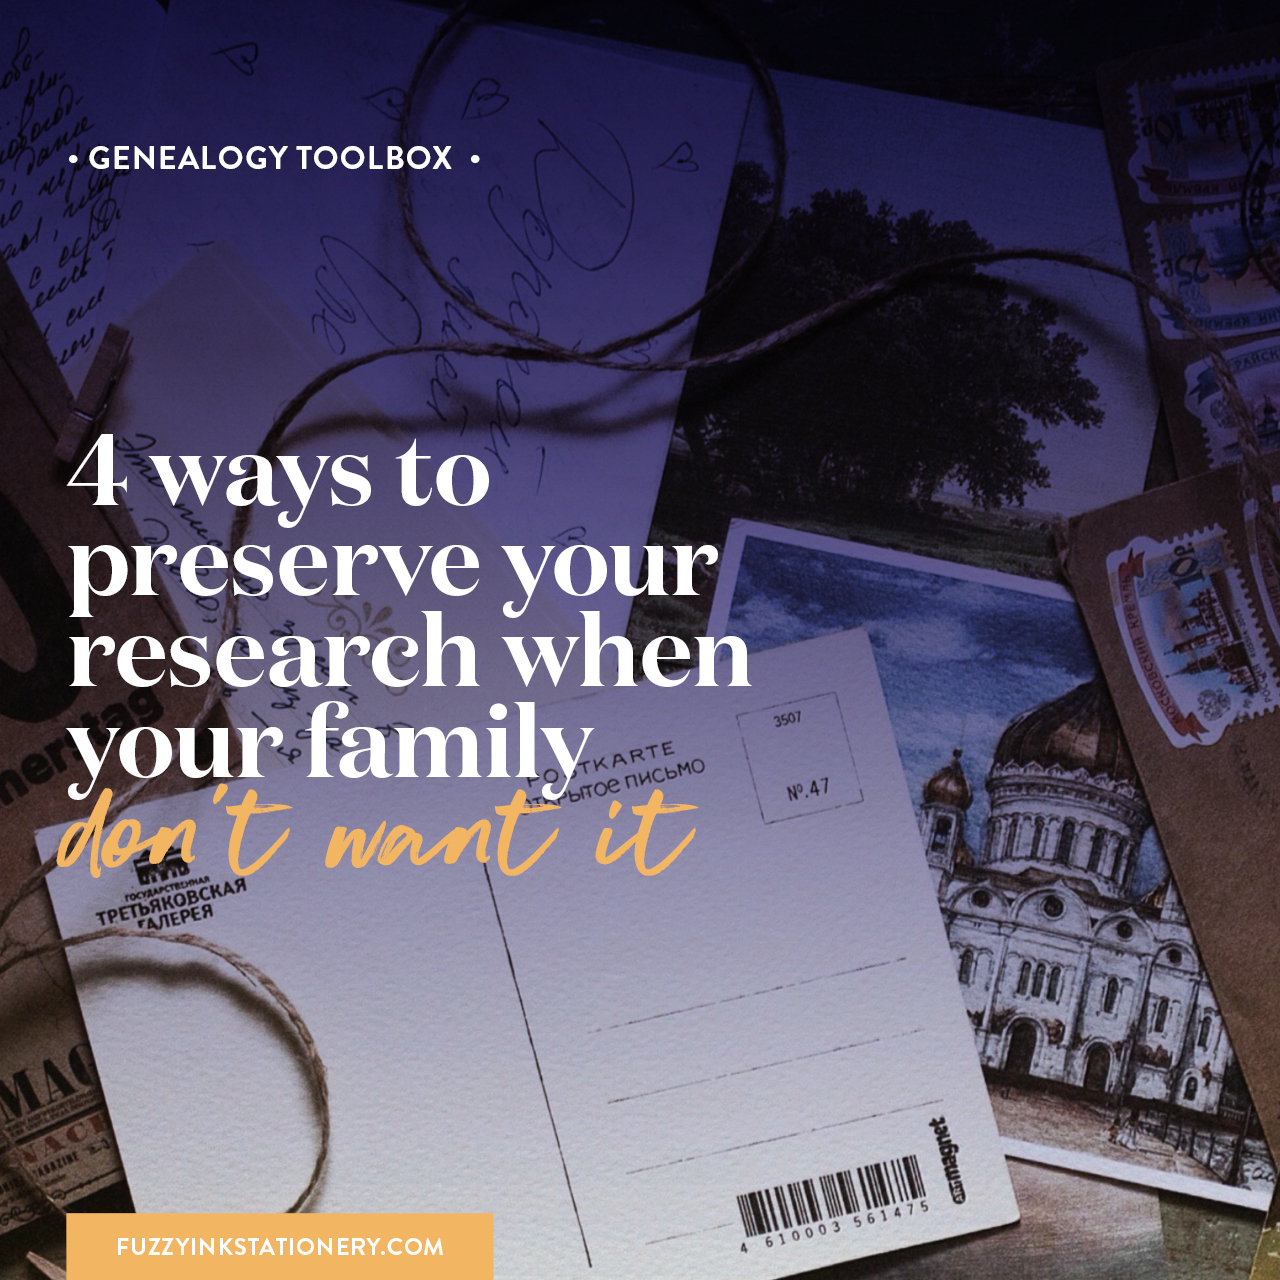 Fuzzy Ink Stationery | GENEALOGY TOOLBOX | 4 ways to preserve your research when your family don't want it.